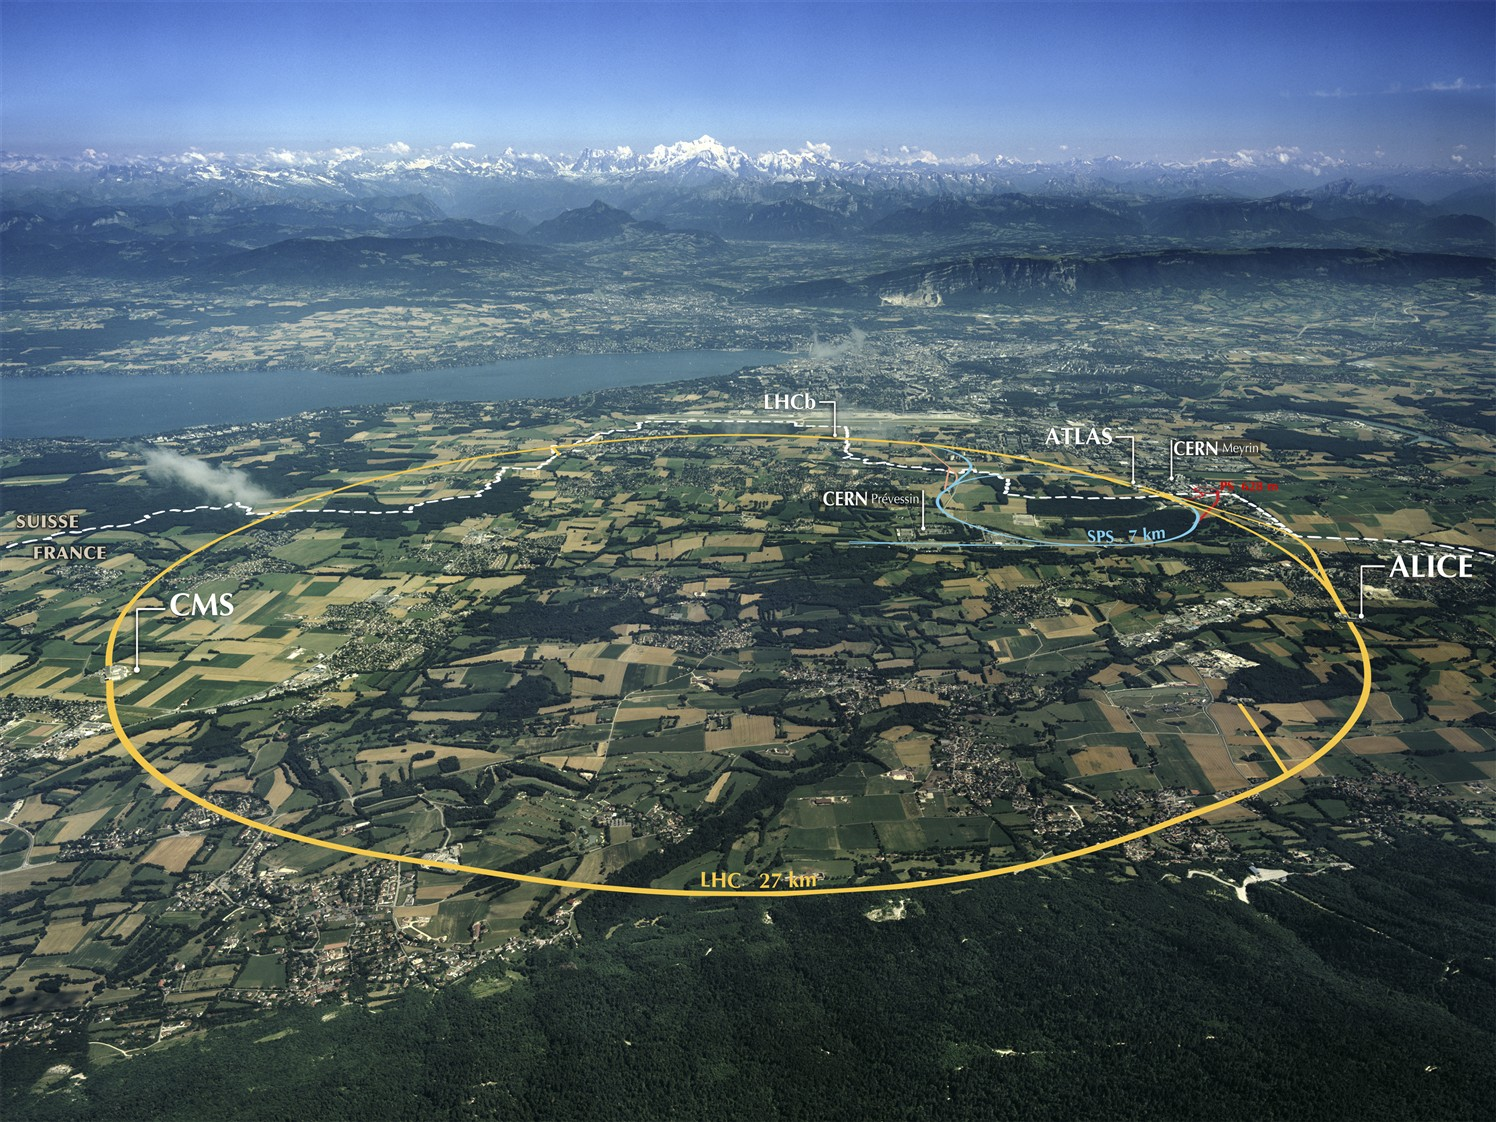 Aerial View of the CERN taken in 2008.